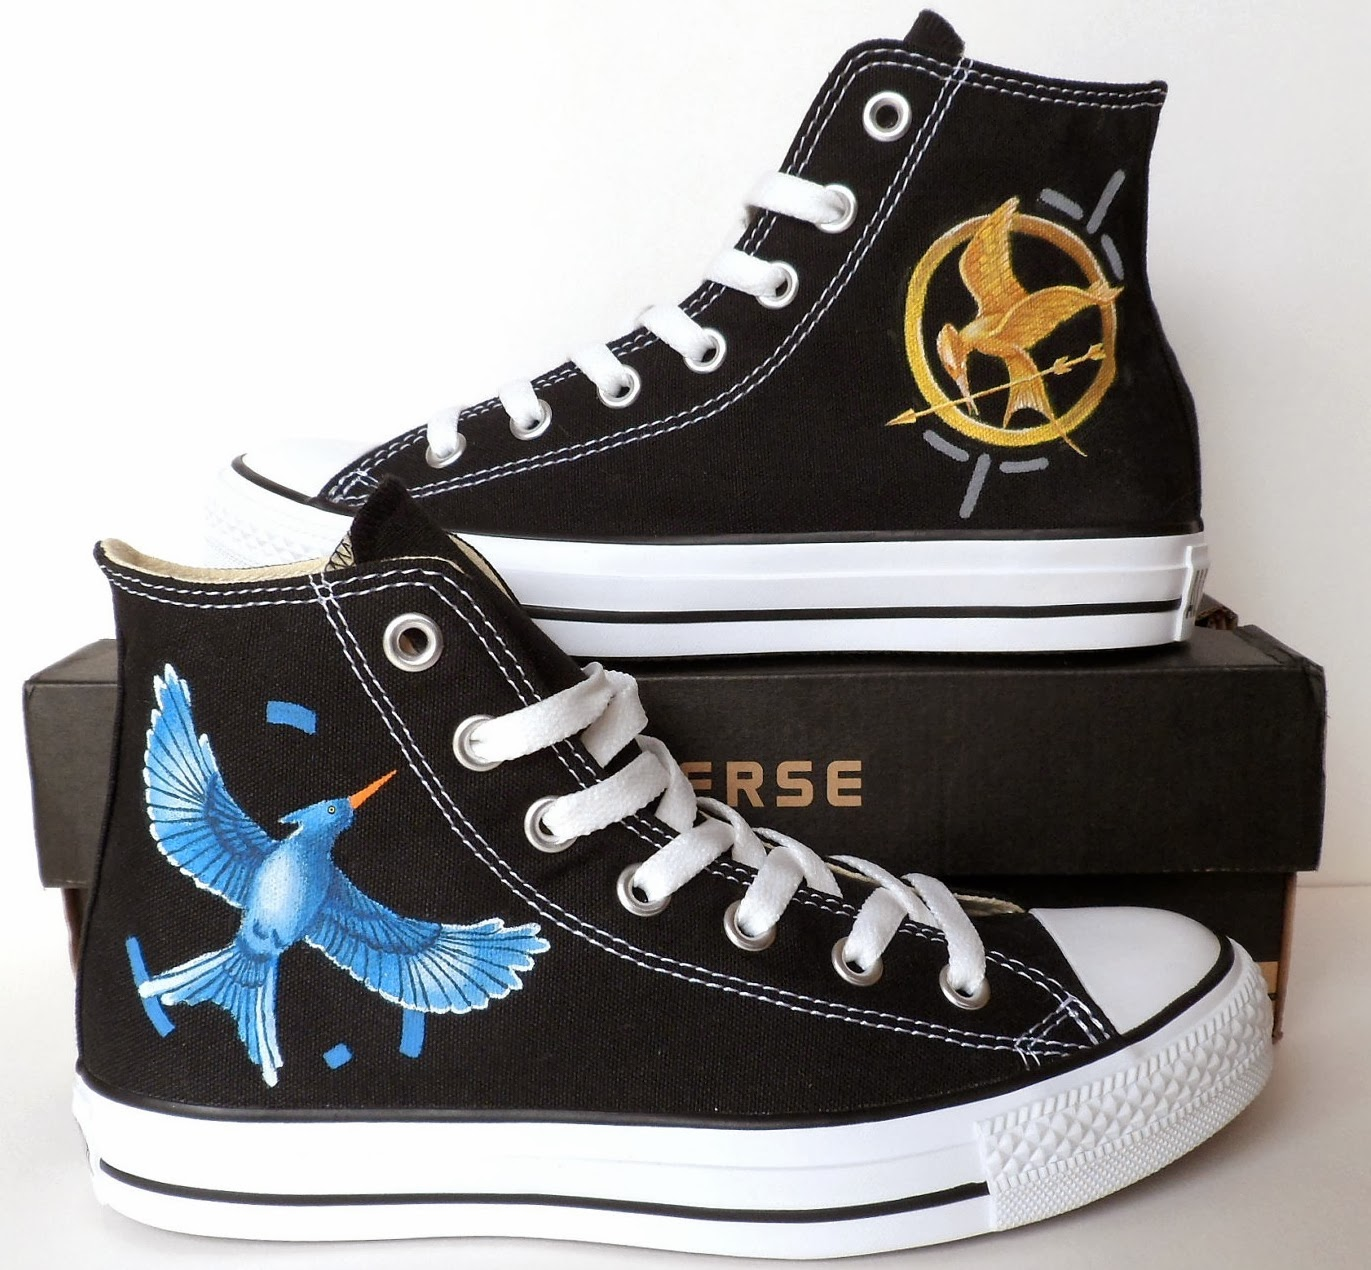 Hunger games mockingjay hi top converse the chamber of converse these hi tops celebrate the symbol of the hunger games trilogy the mockingjay on one side is the majestic bird itself a sign of peace for panem biocorpaavc Choice Image